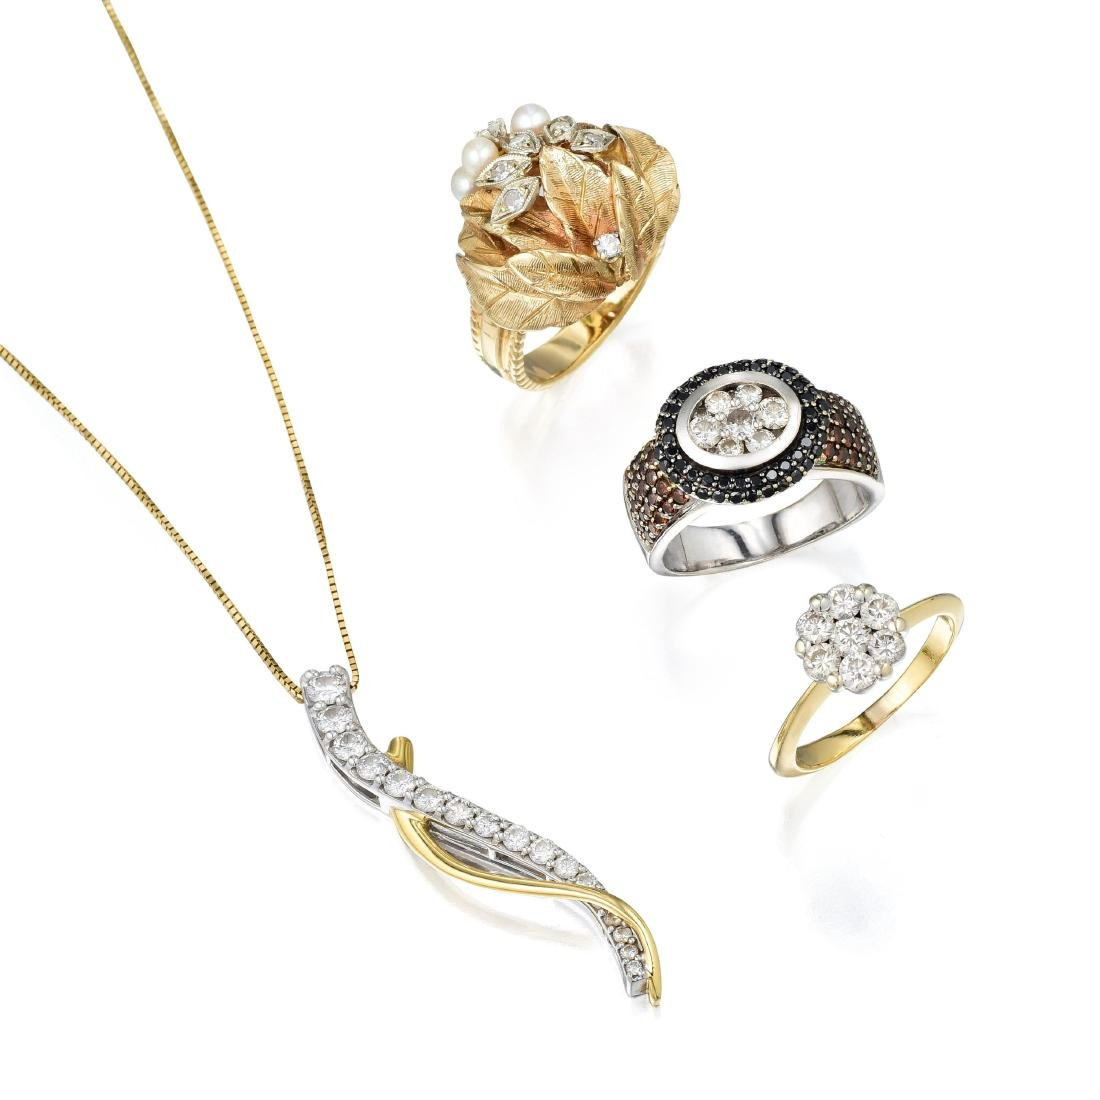 A Group of 14K Gold and Diamond Jewelry